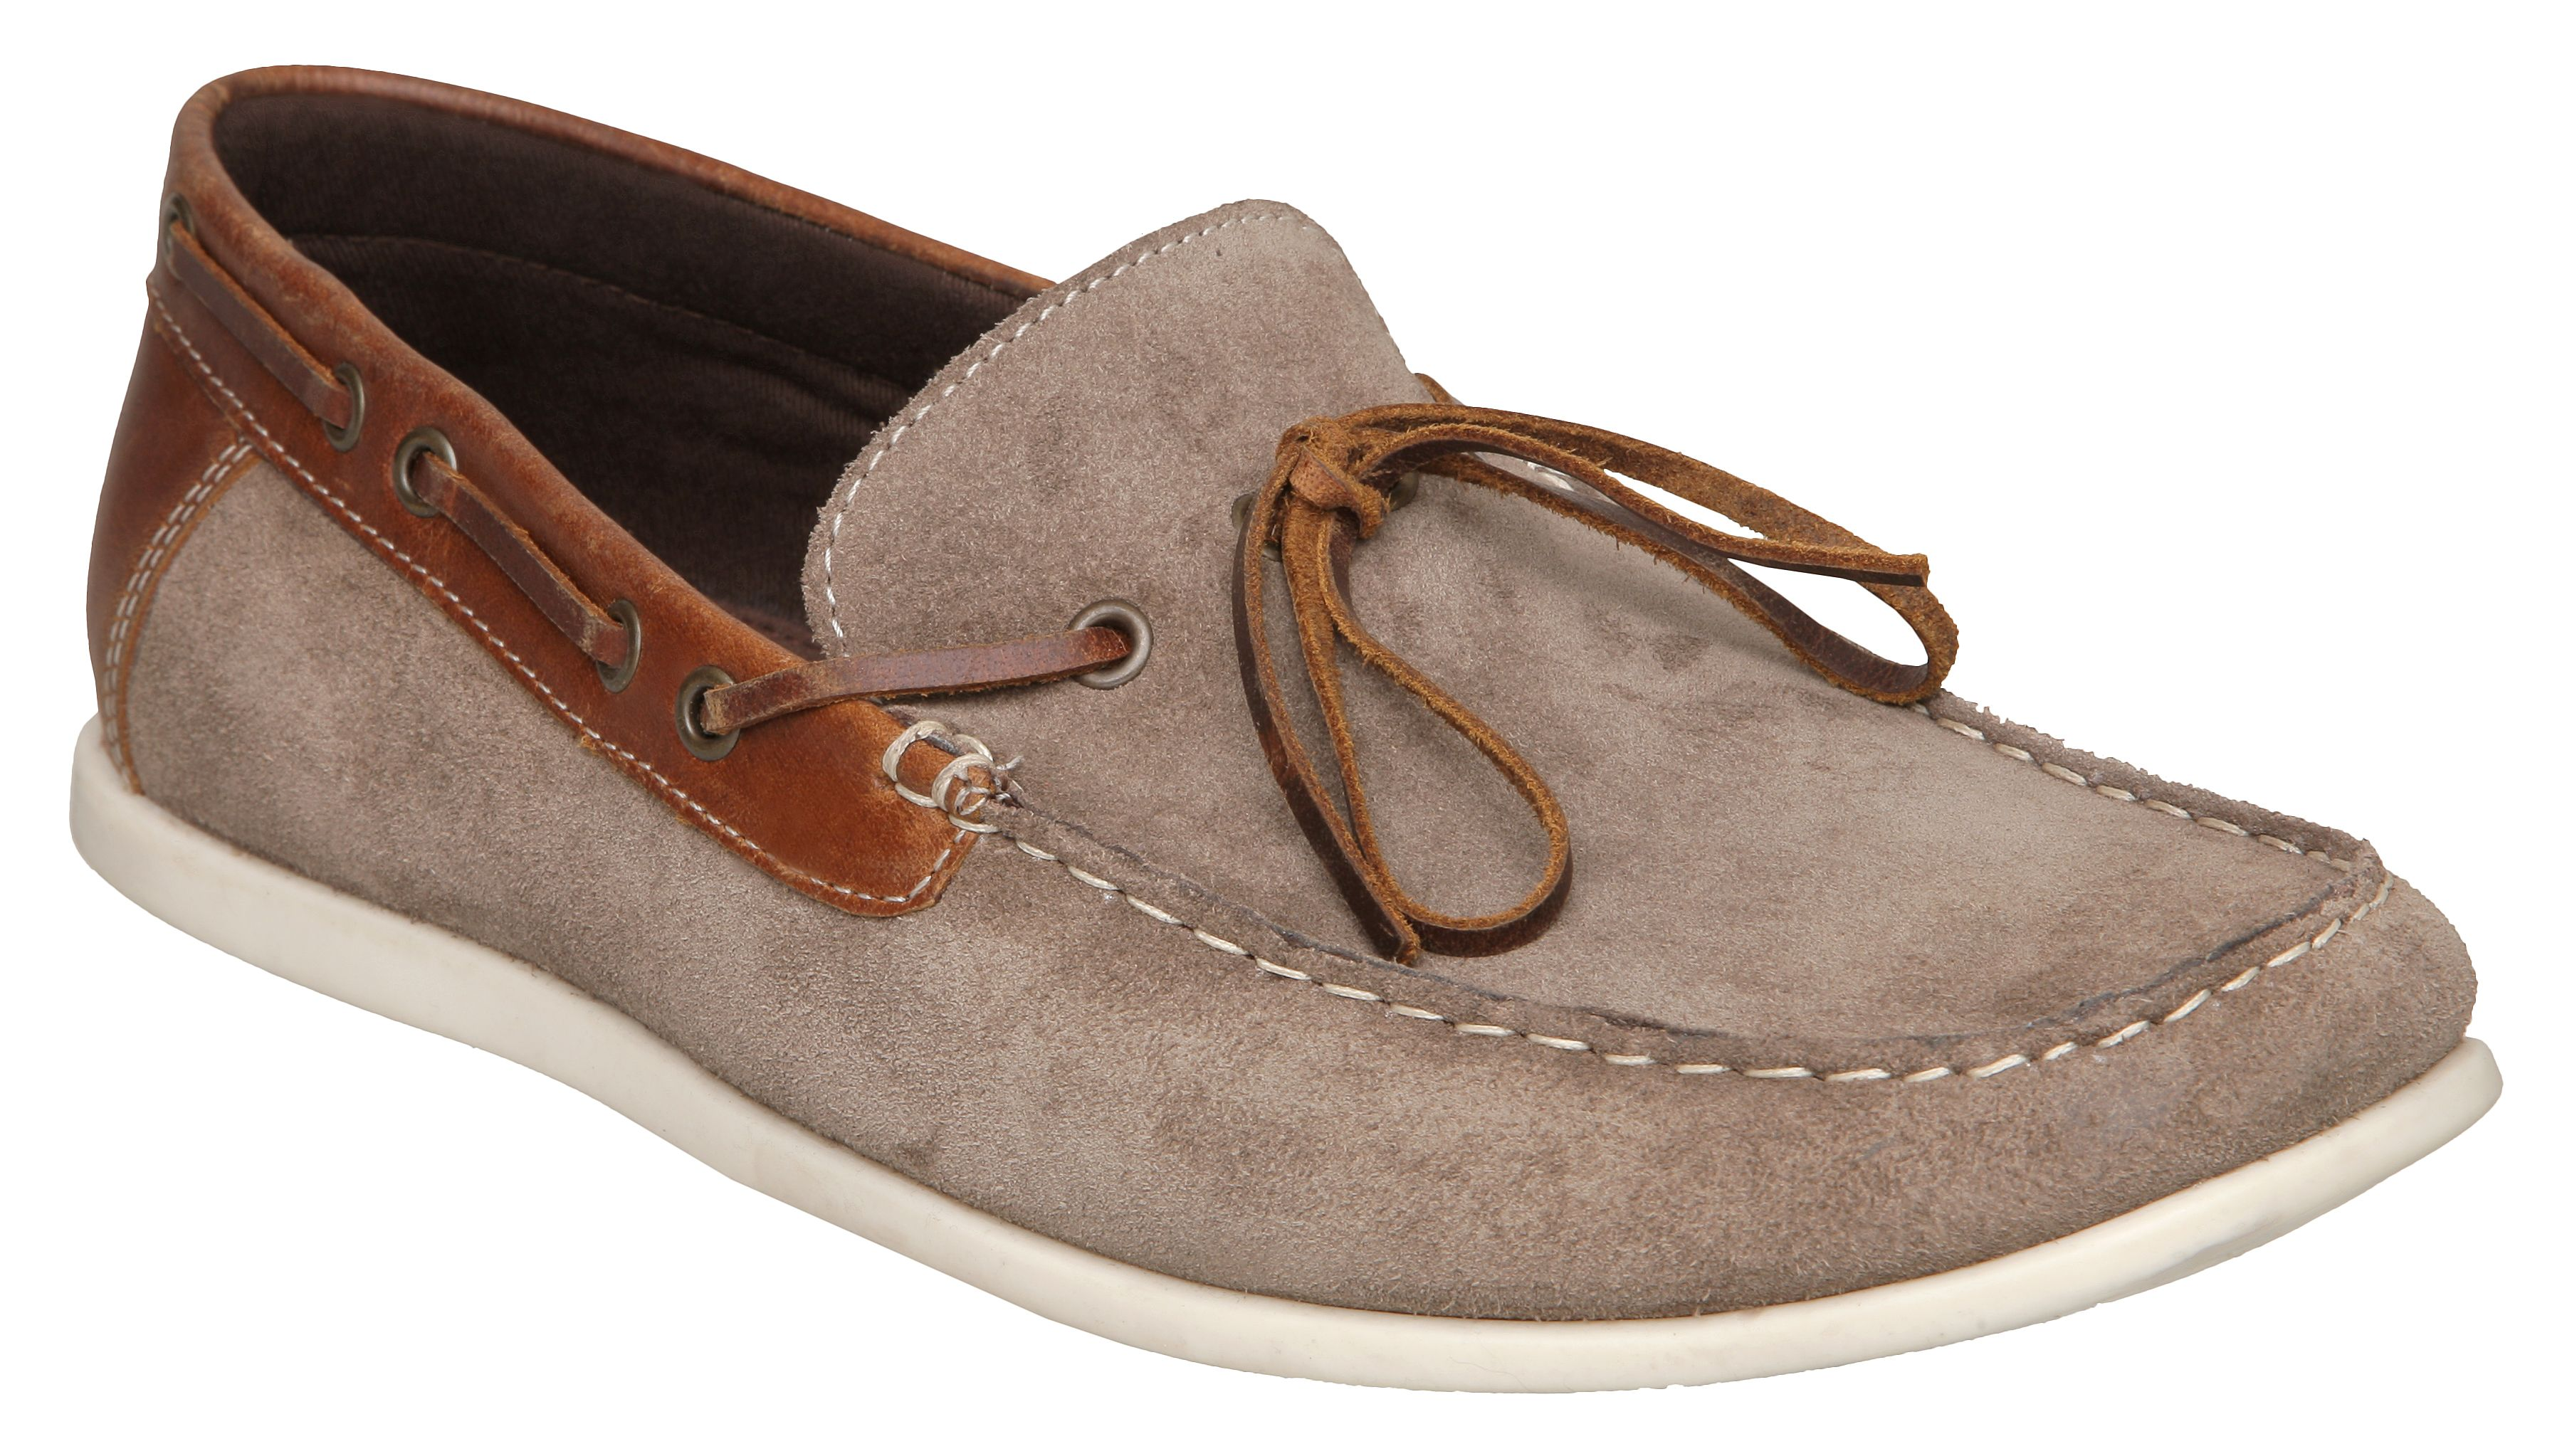 Howick Howick Below Suede Slip-on Shoes, Brown